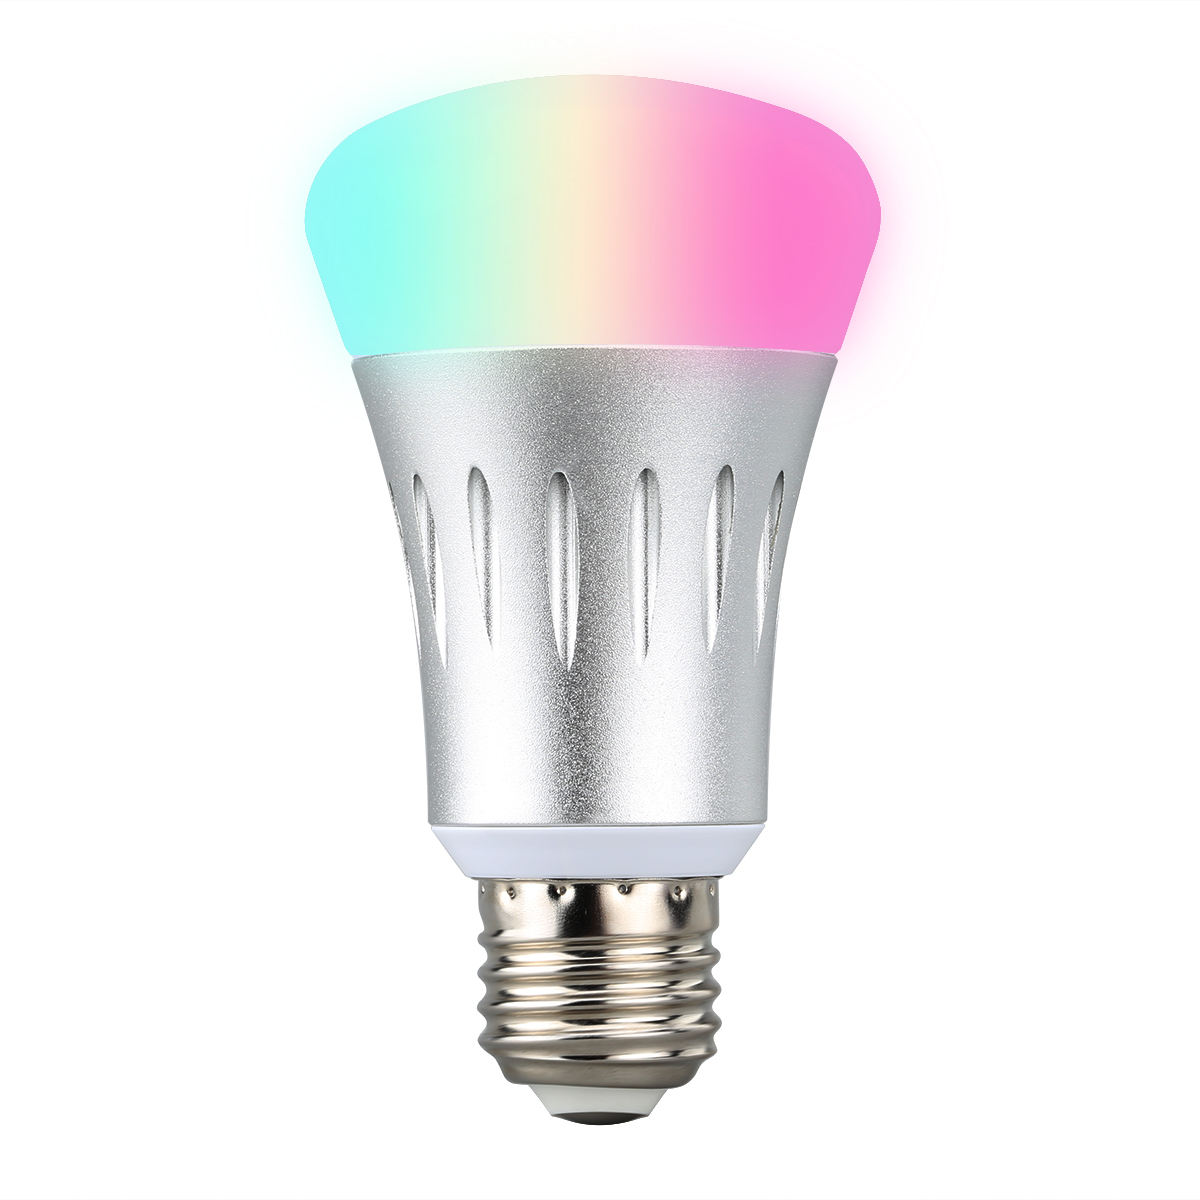 Wireless APP/Voice Control Dimmable LED Smart Light Bulb ...